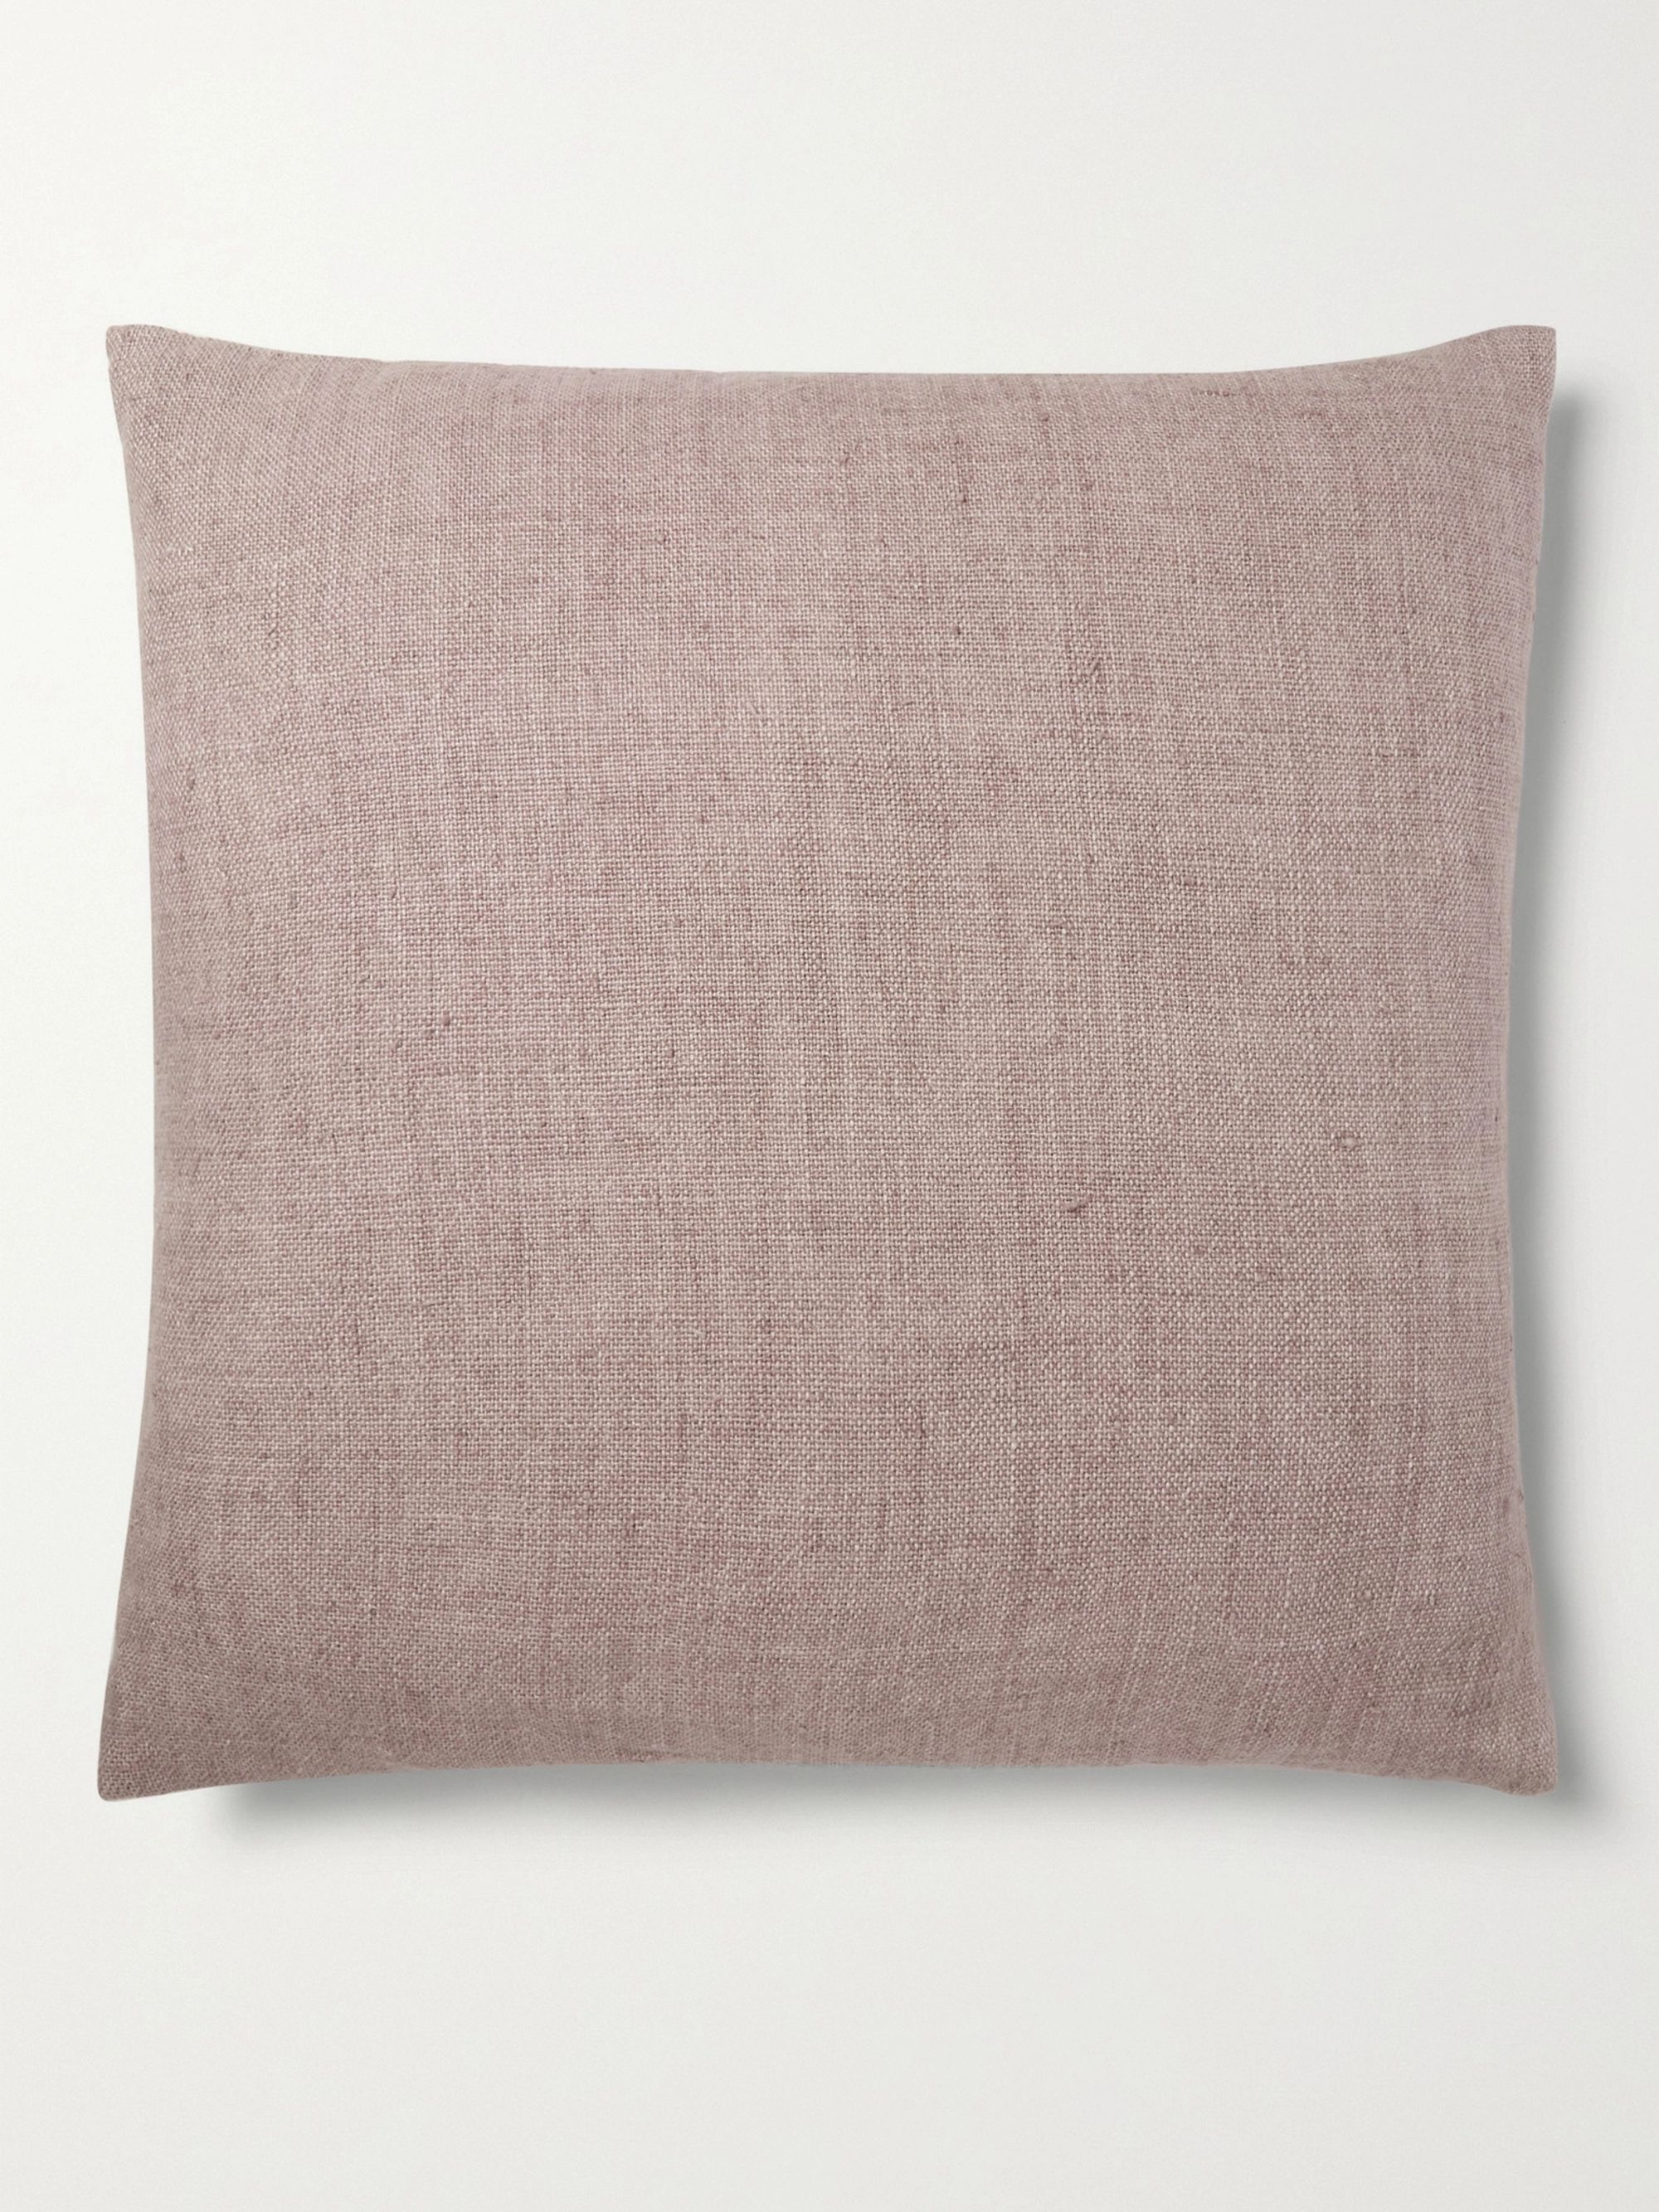 Roman & Williams Guild Linen Cushion